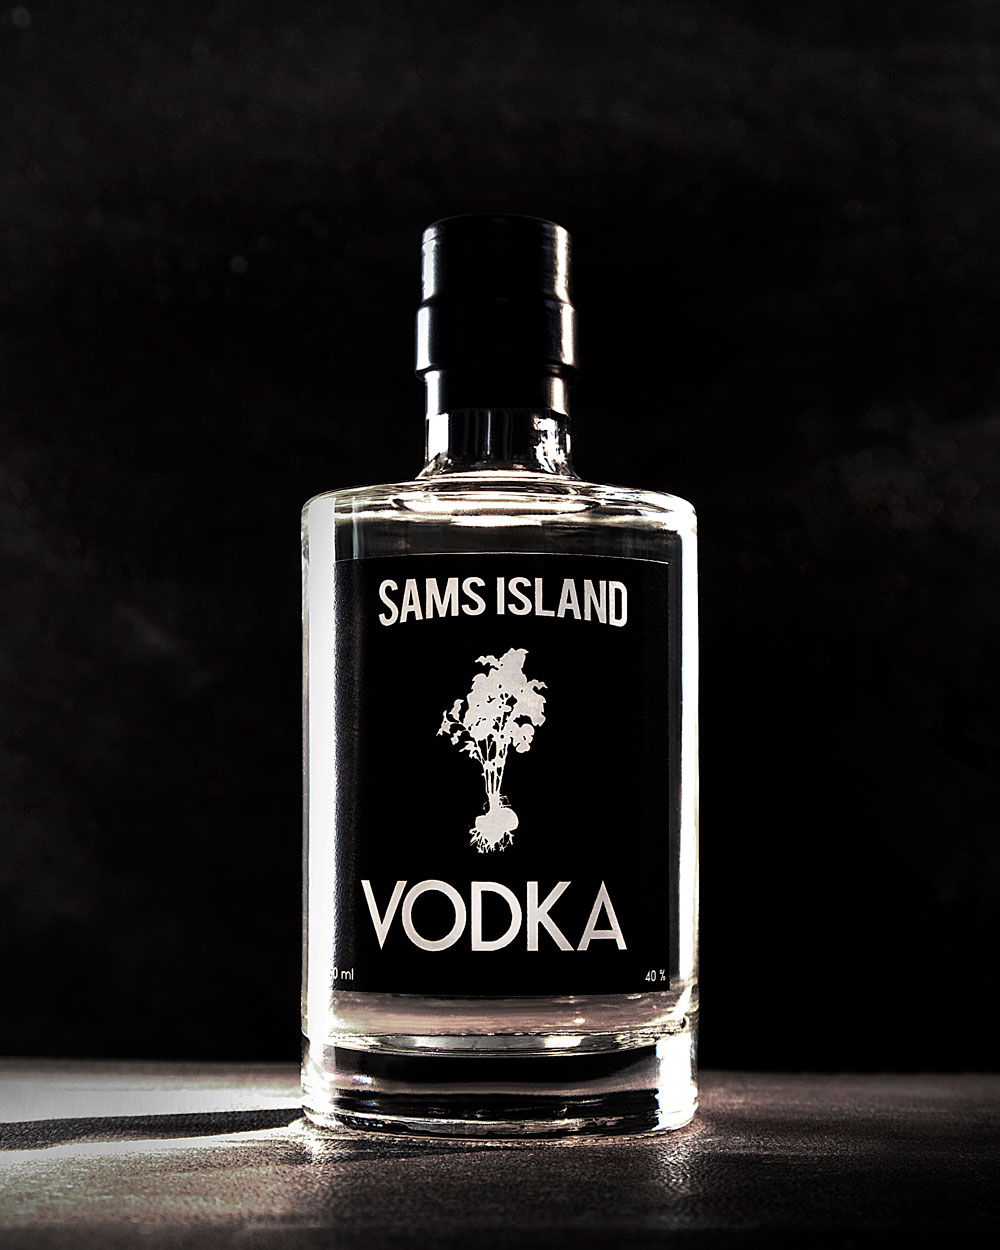 Sams-Island-vodka-web.jpg